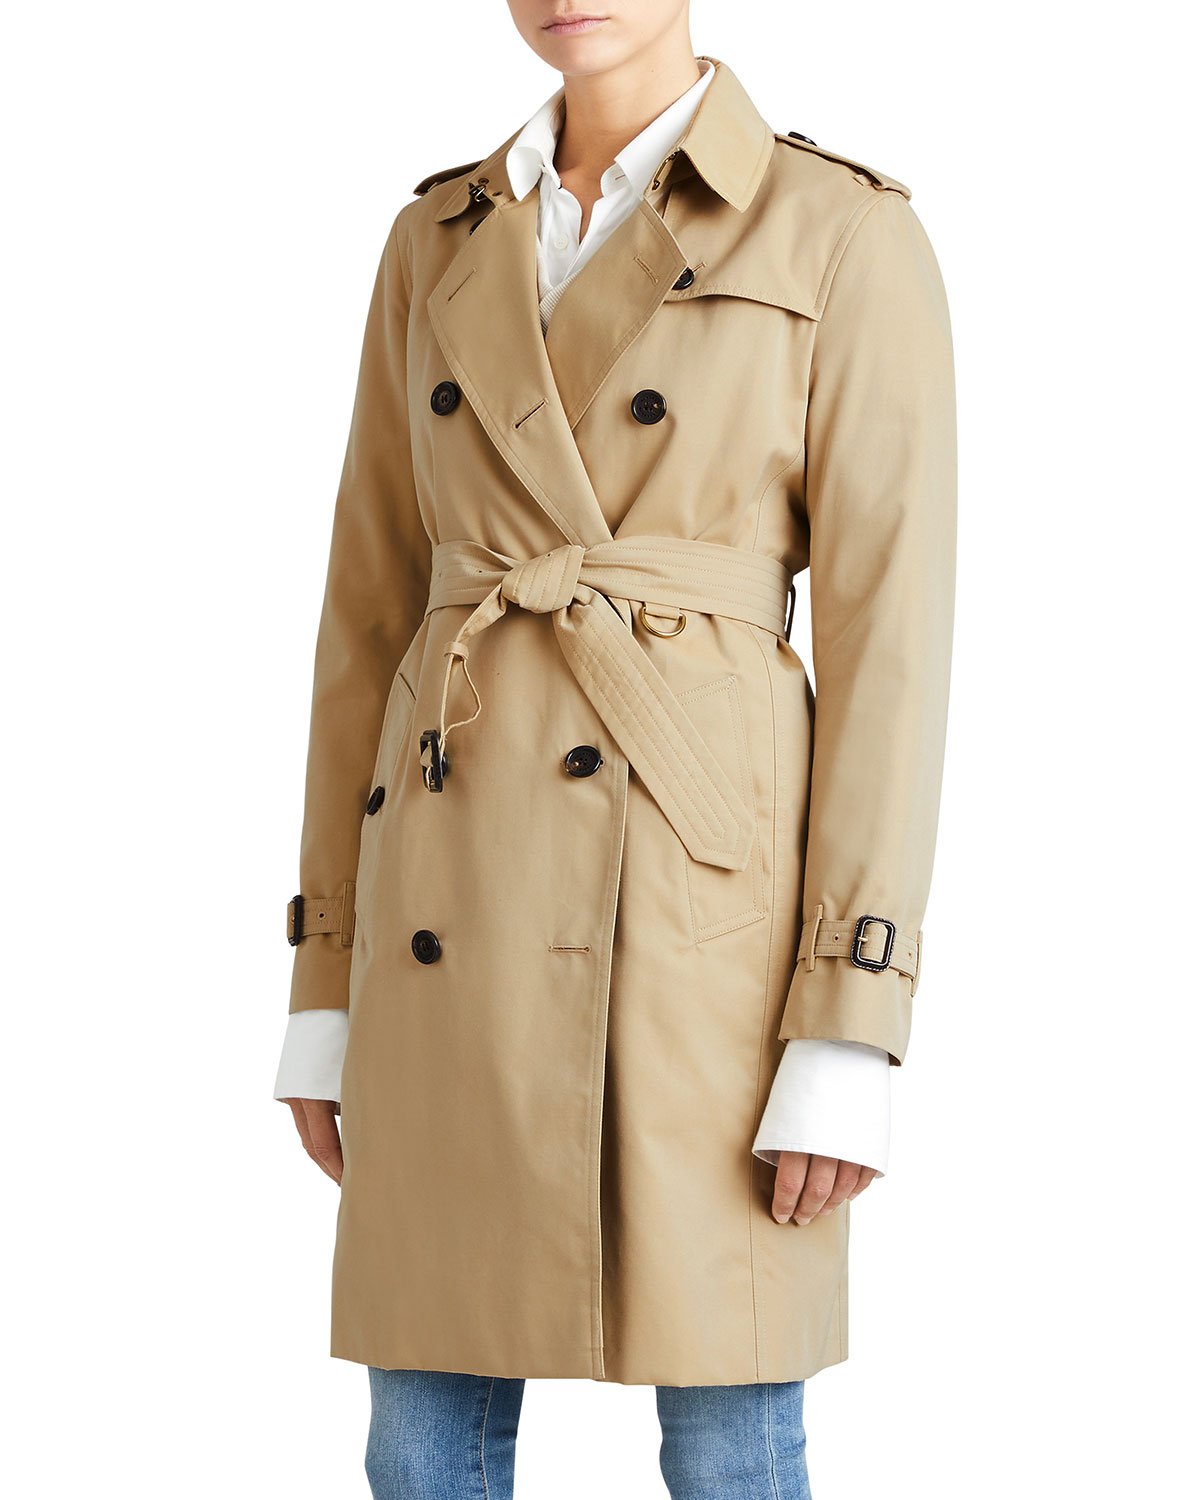 Burberry The Kensington - Long Heritage Trench Coat, Honey   Neiman ... 0bfeda11506